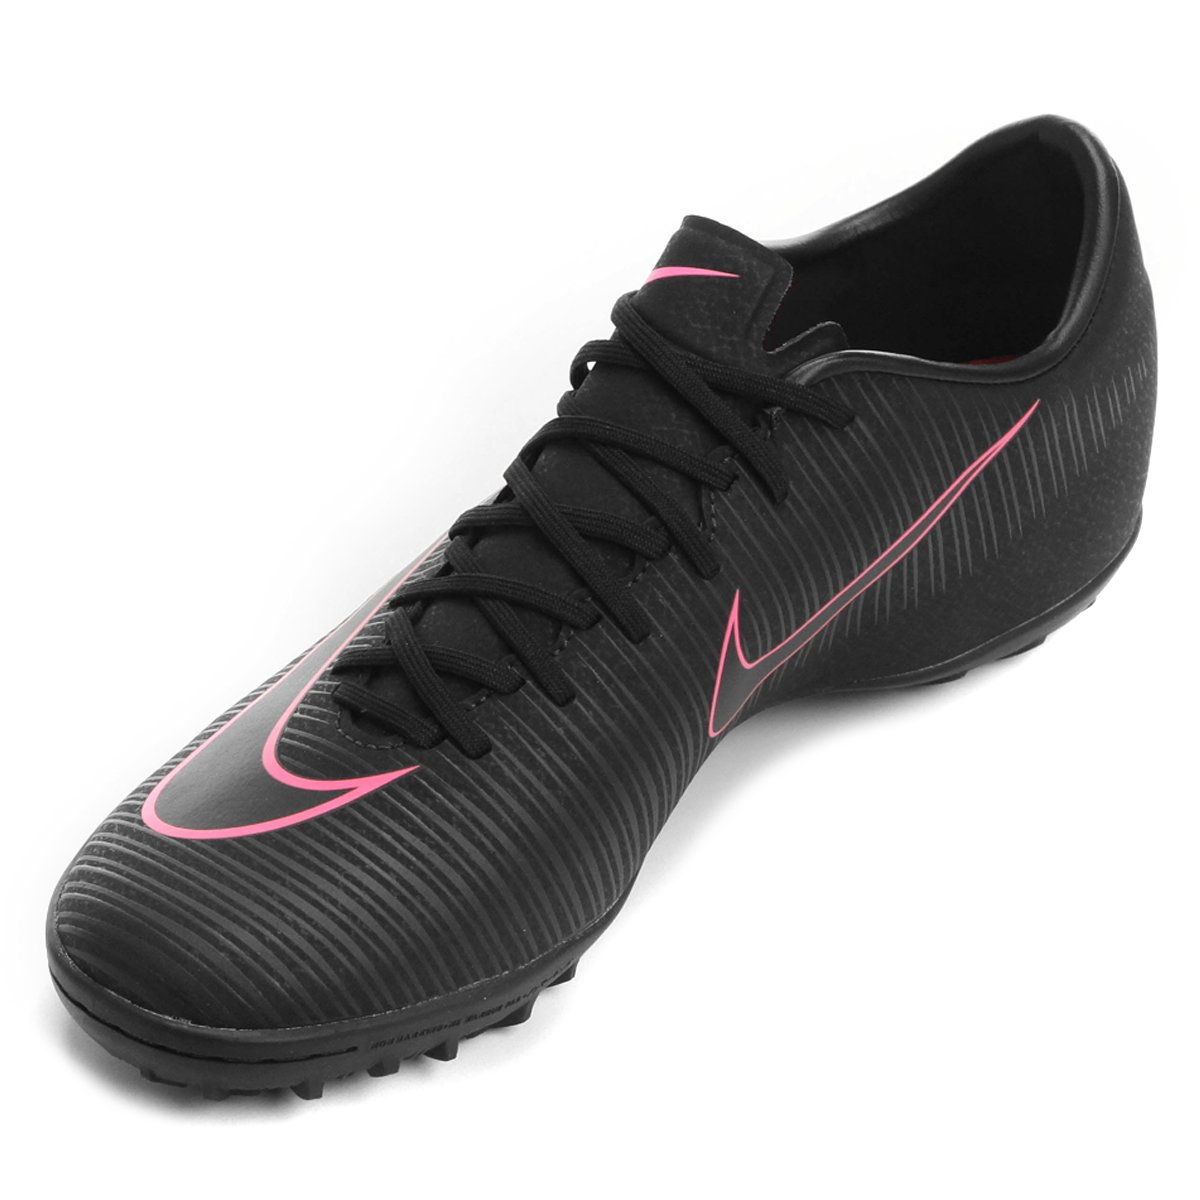 3a69483202f51 ... coupon code chuteira society nike mercurial victory 6 tf masculina  81c49 4f55a ...